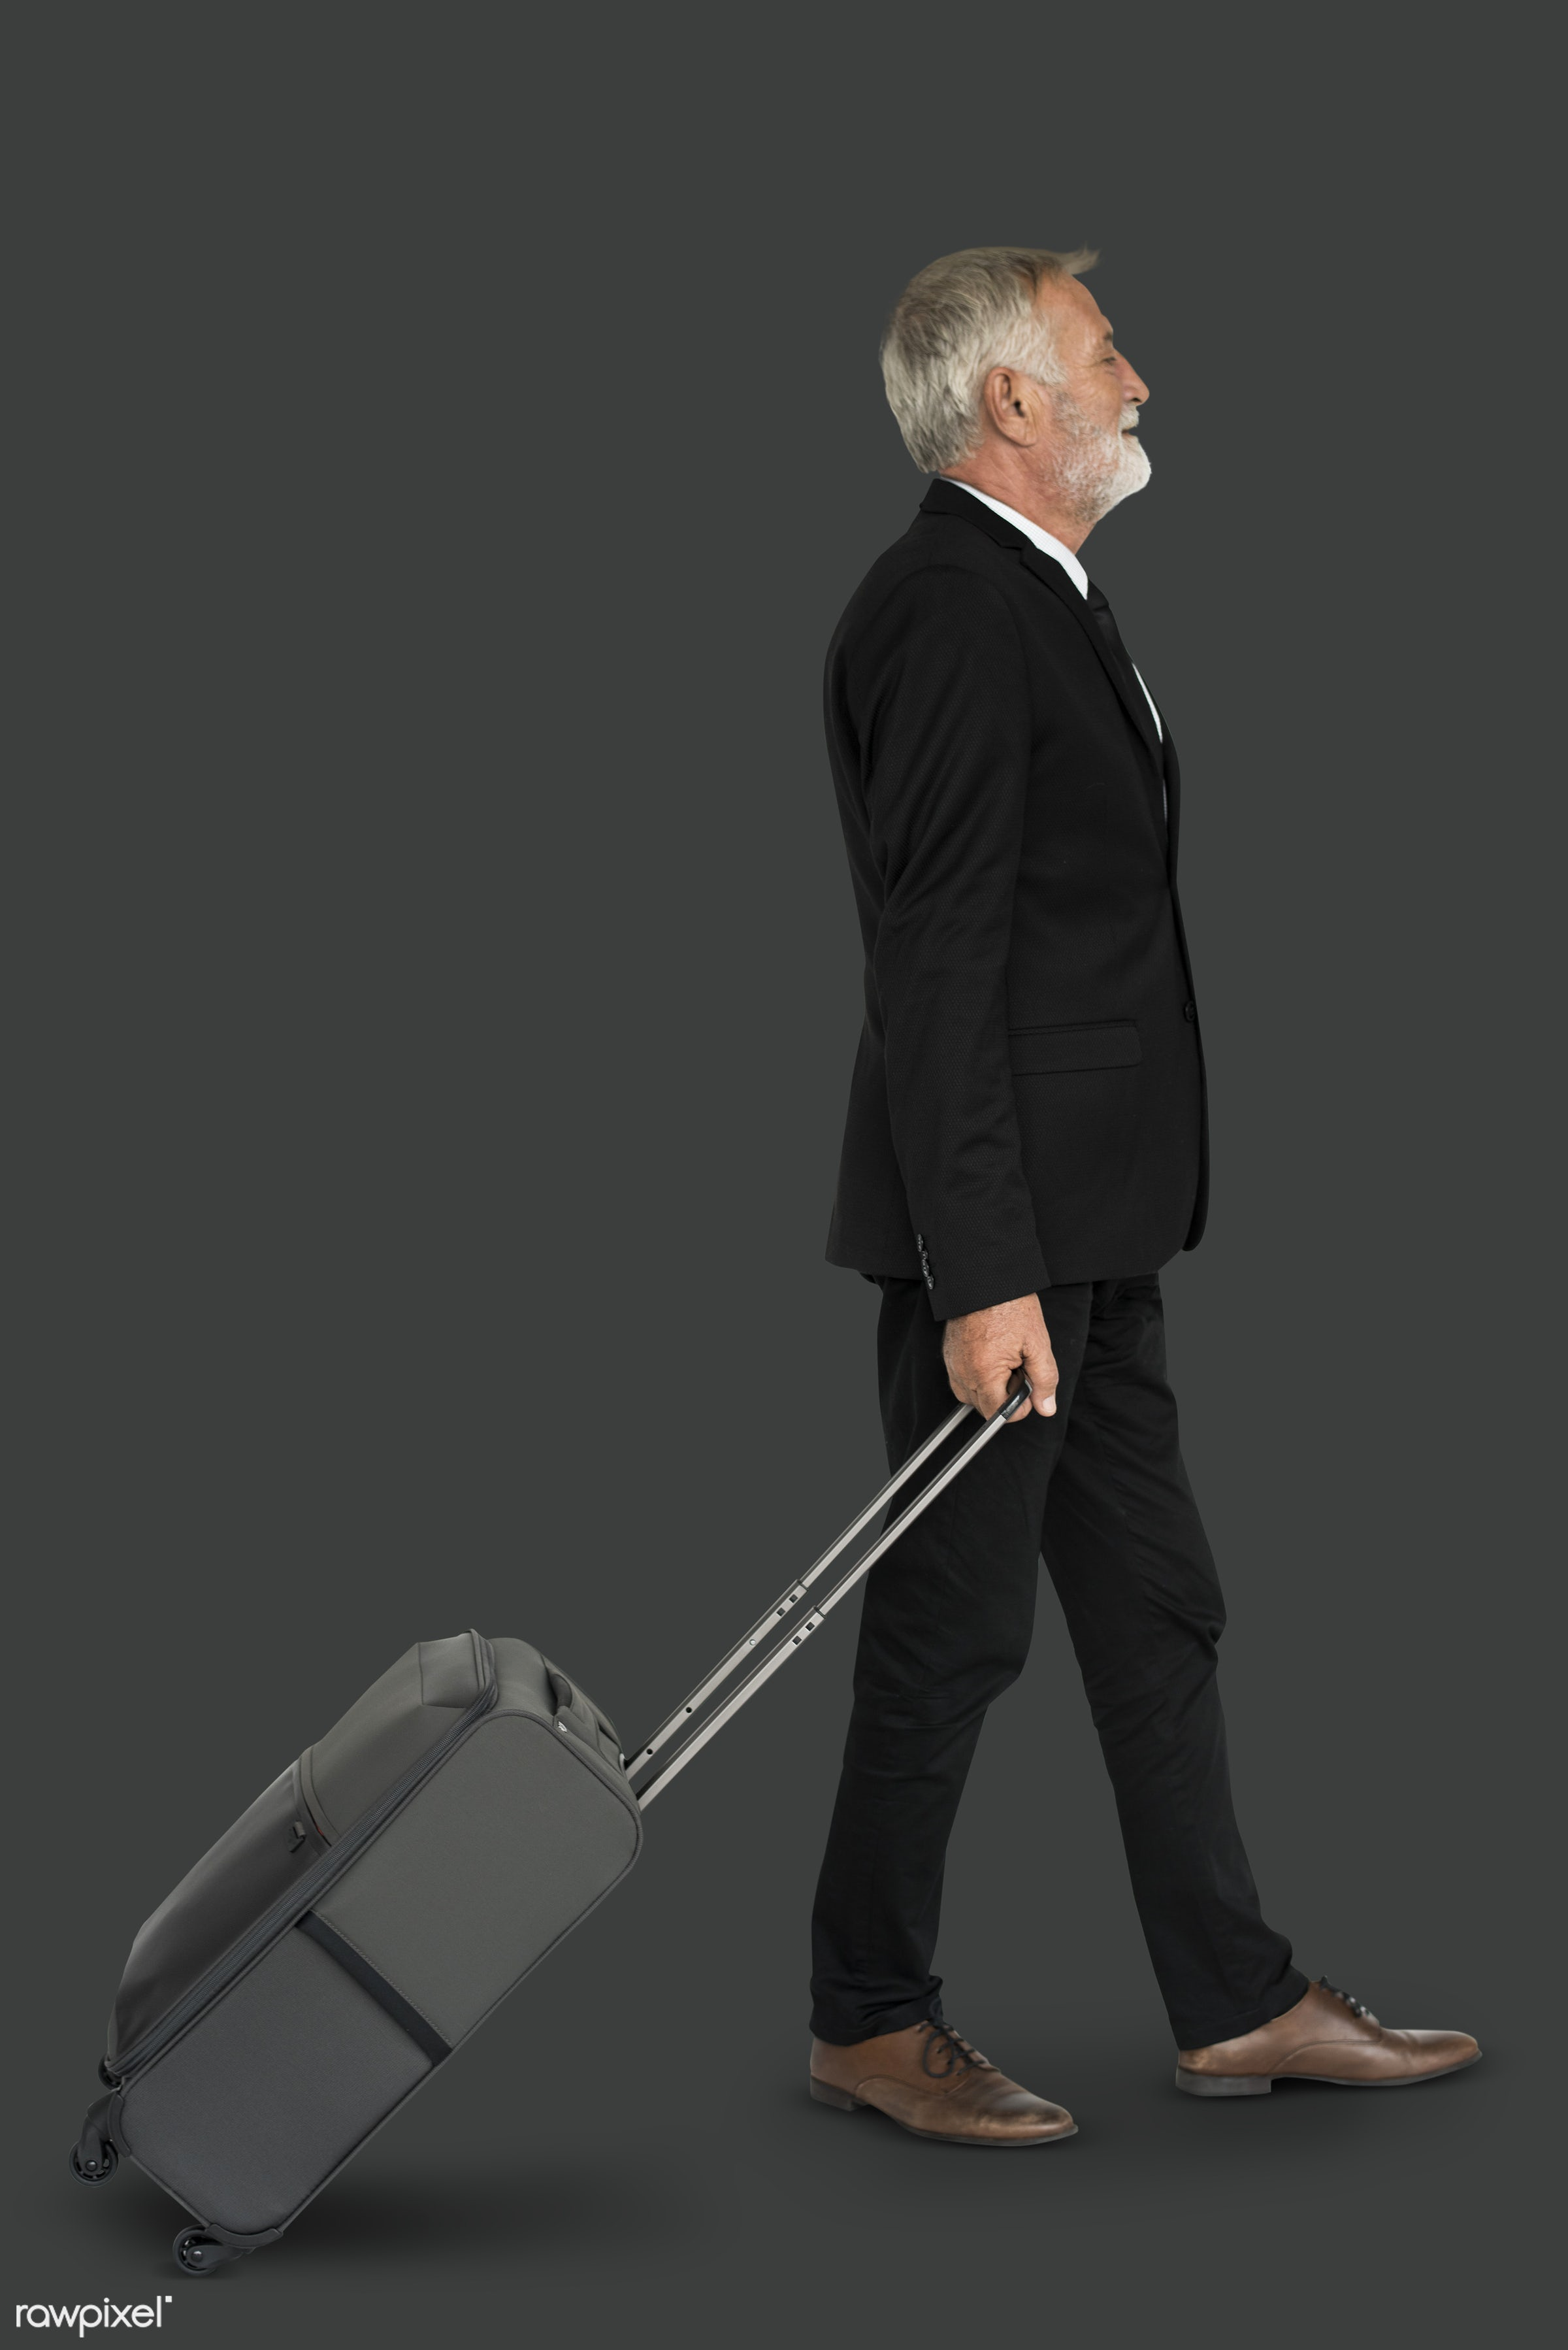 studio, face, person, travel, people, business, businessman, grey, trip, man, isolated, suitcase, male, traveler, business...